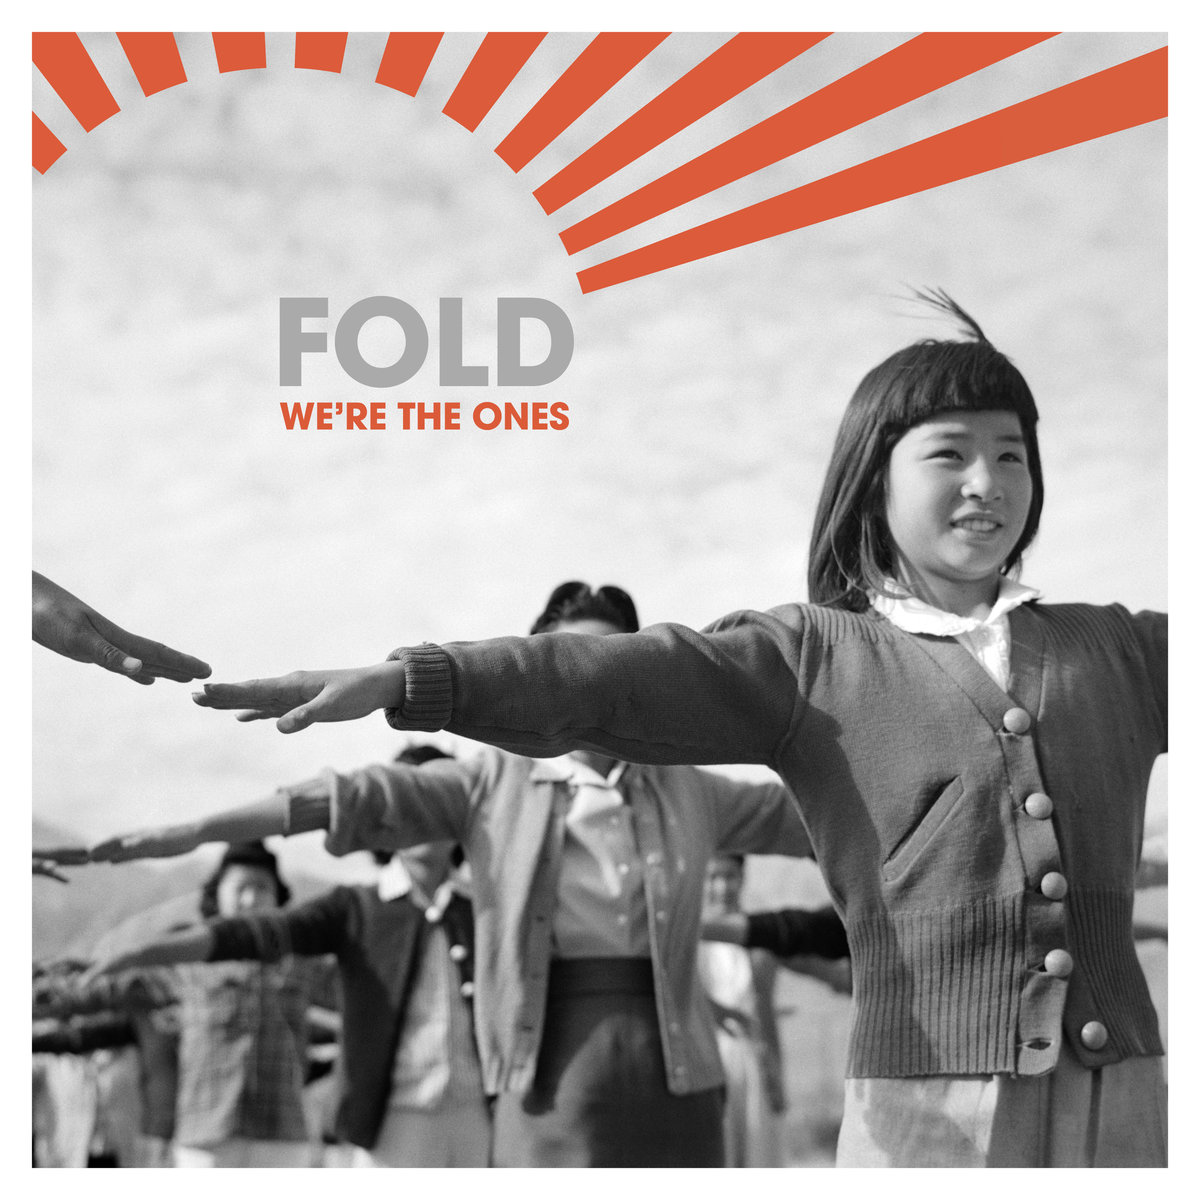 Listen: Fold – We're The Ones (Album)